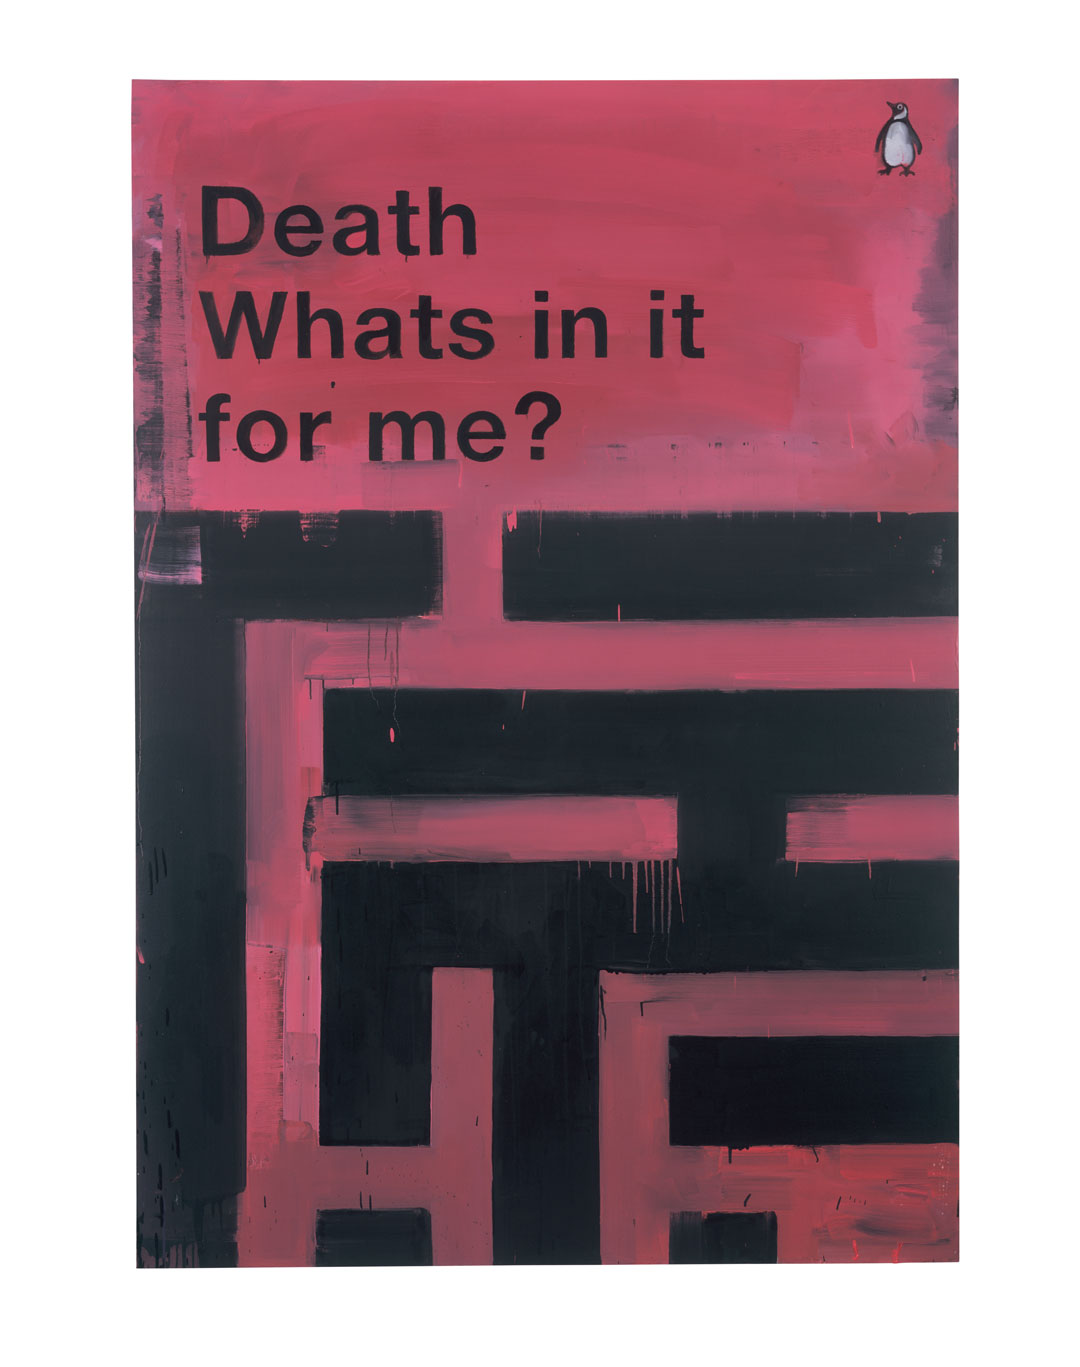 Death – What's In It For Me? (2008) by Harland Miller